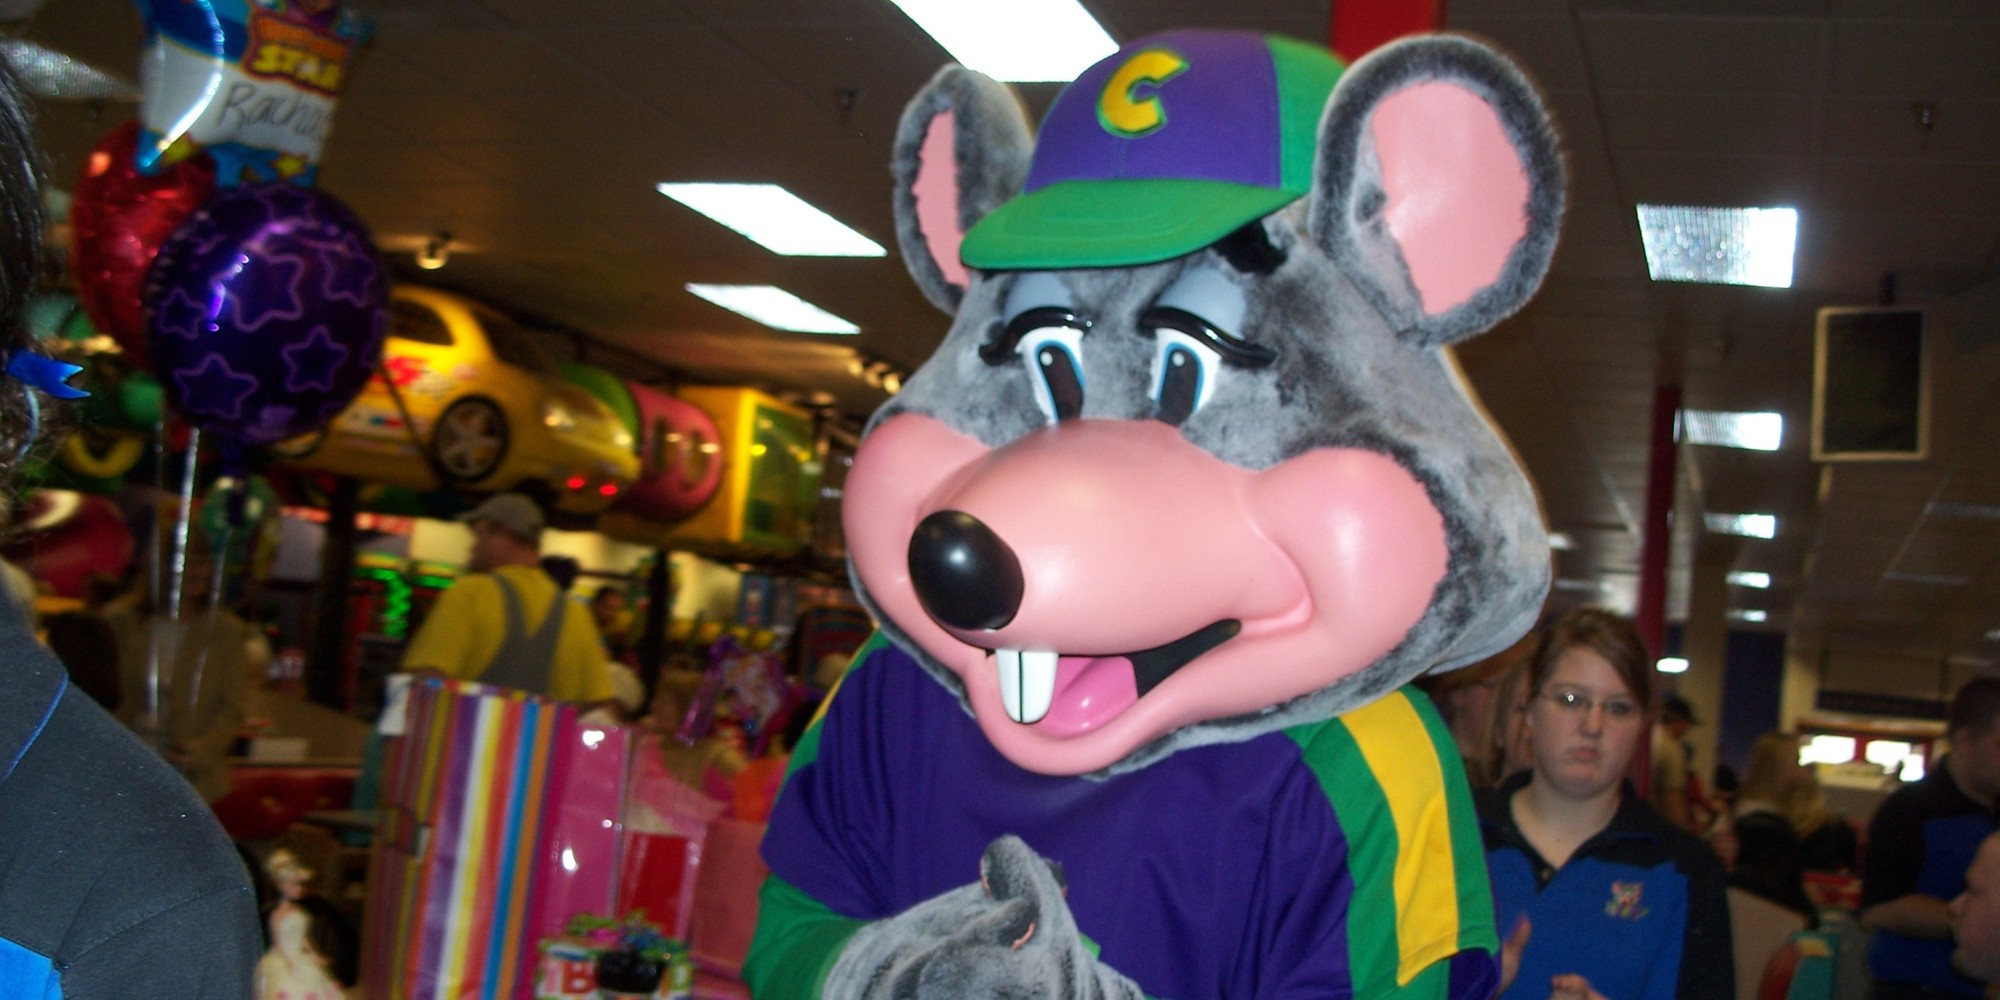 Chuck E Cheese: Were These Yelp Reviews For Chuck E. Cheese Or Prison